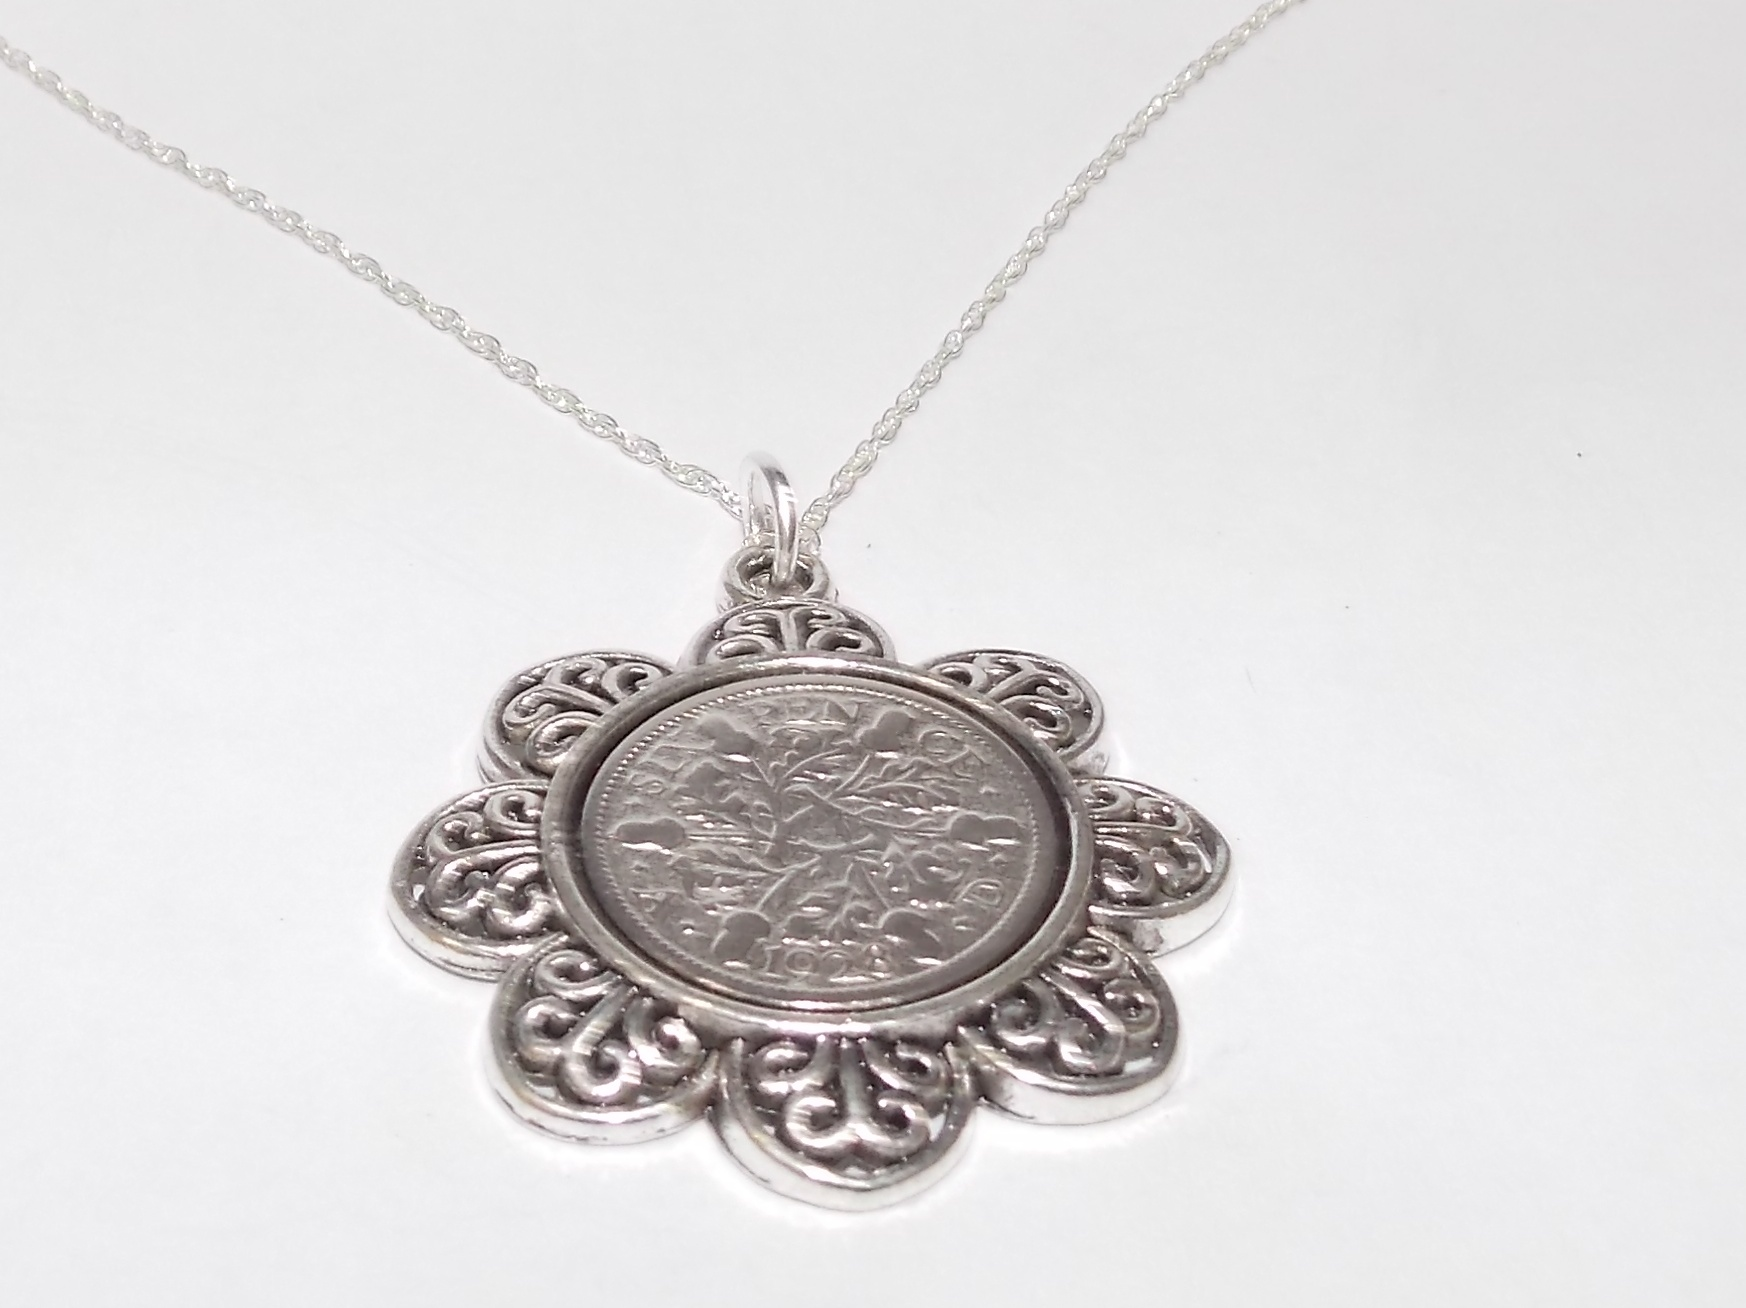 18 inch Sterling Silver Chain Details about  /Fine Pendant 1928 Irish sixpence 93rd Birthday